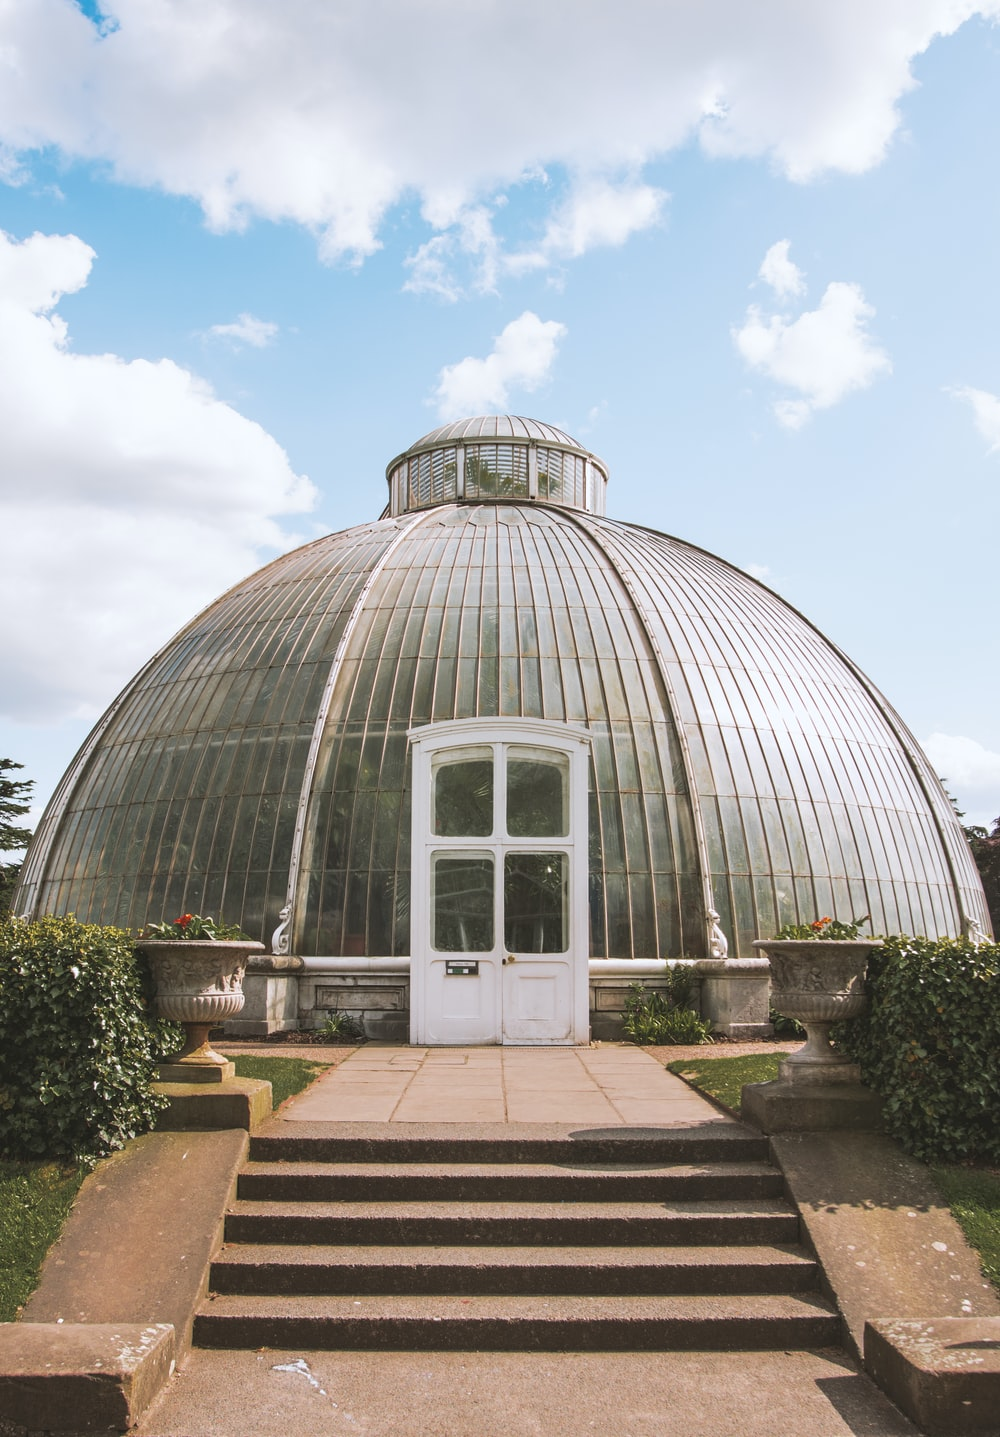 dome-shaped greenhouse